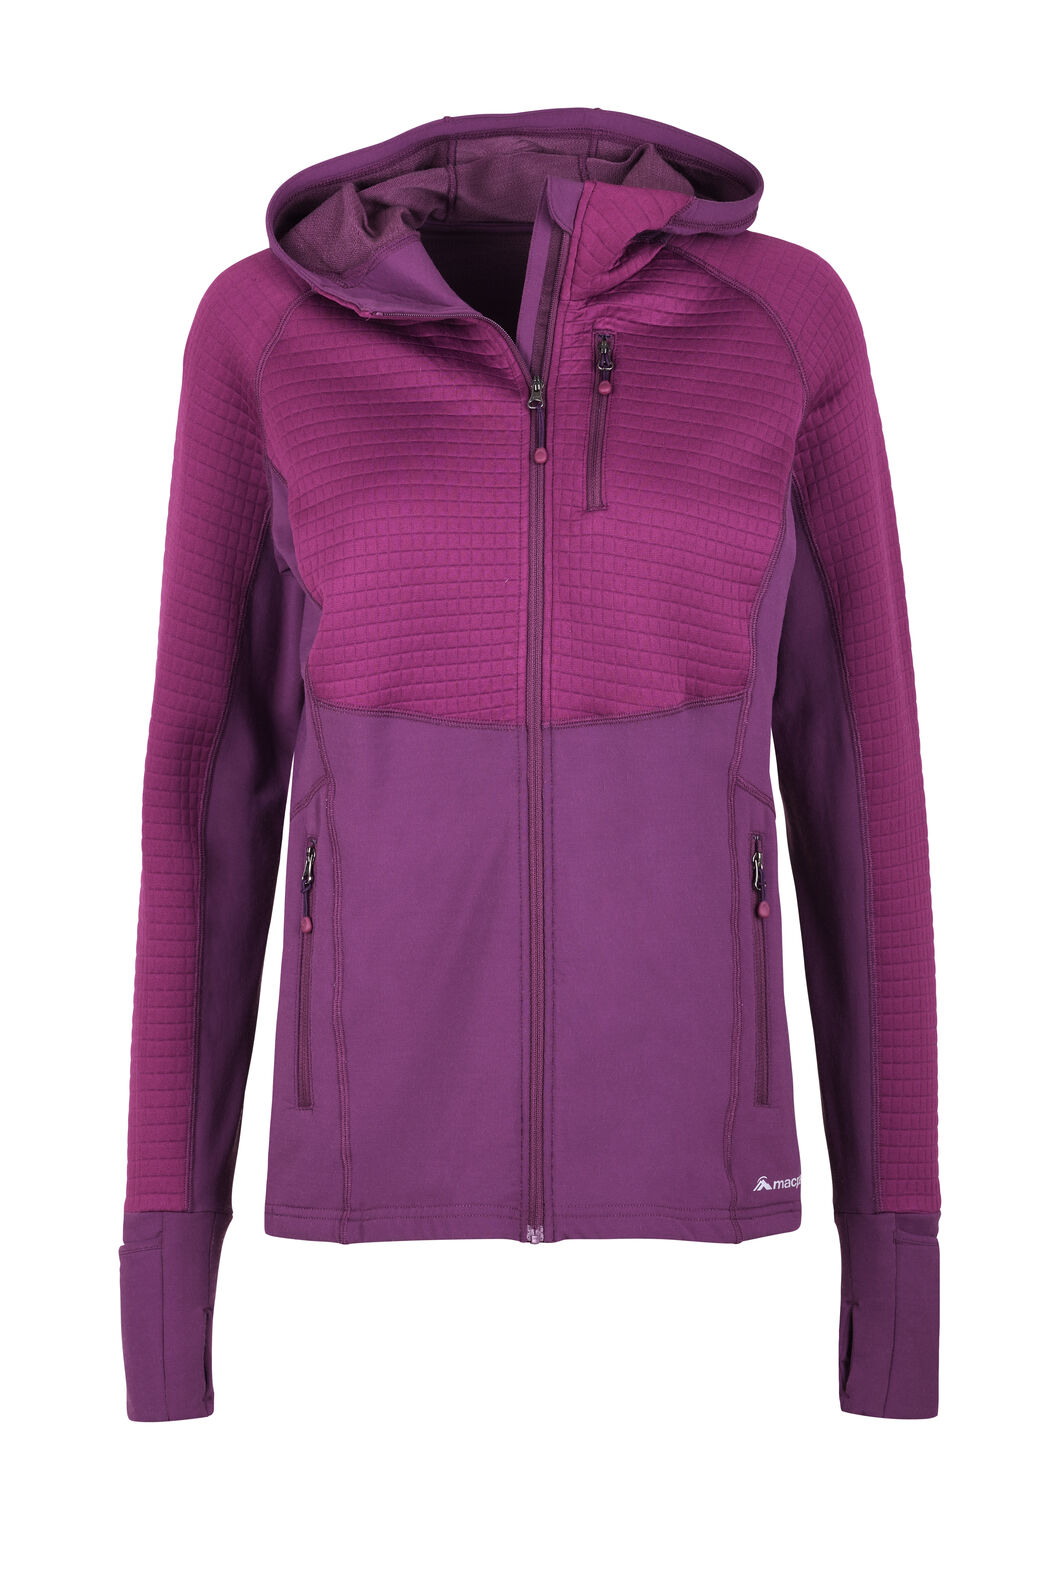 Macpac Delta Merino Blend Jacket — Women's, Magenta/Purple, hi-res